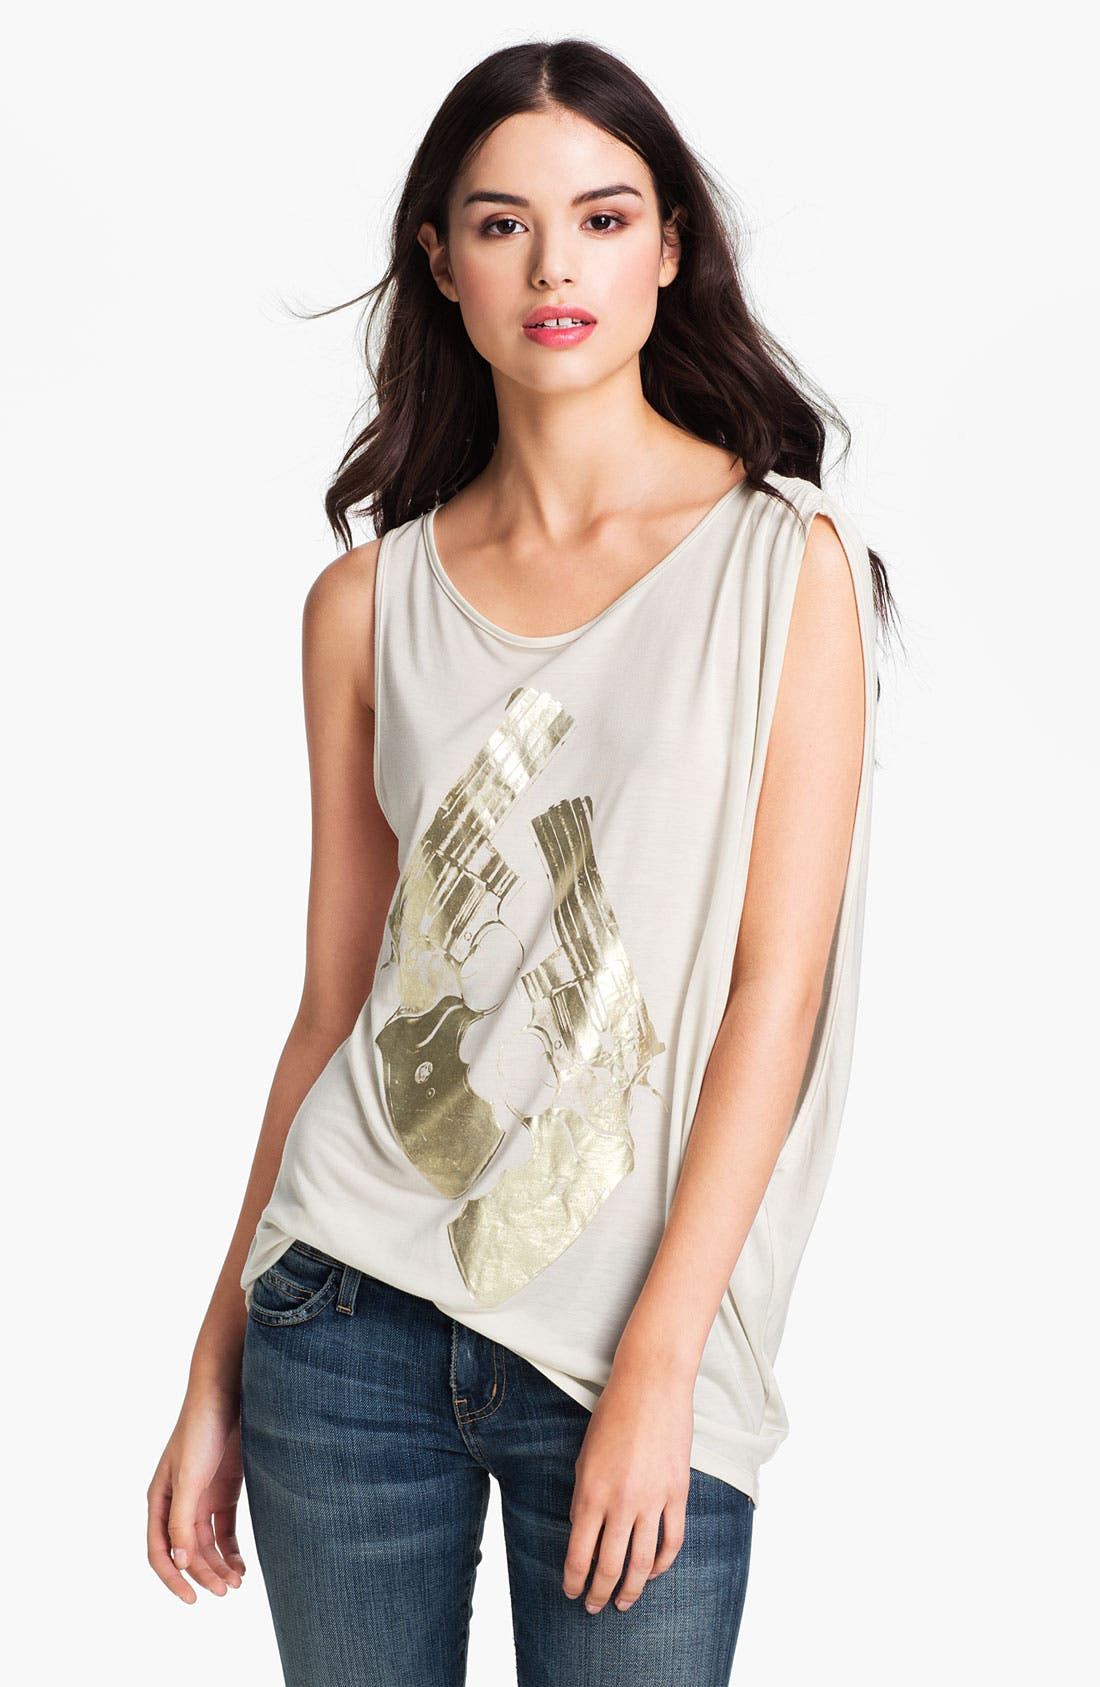 Alternate Image 1 Selected - Haute Hippie 'Gold Guns' Metallic Graphic Tank